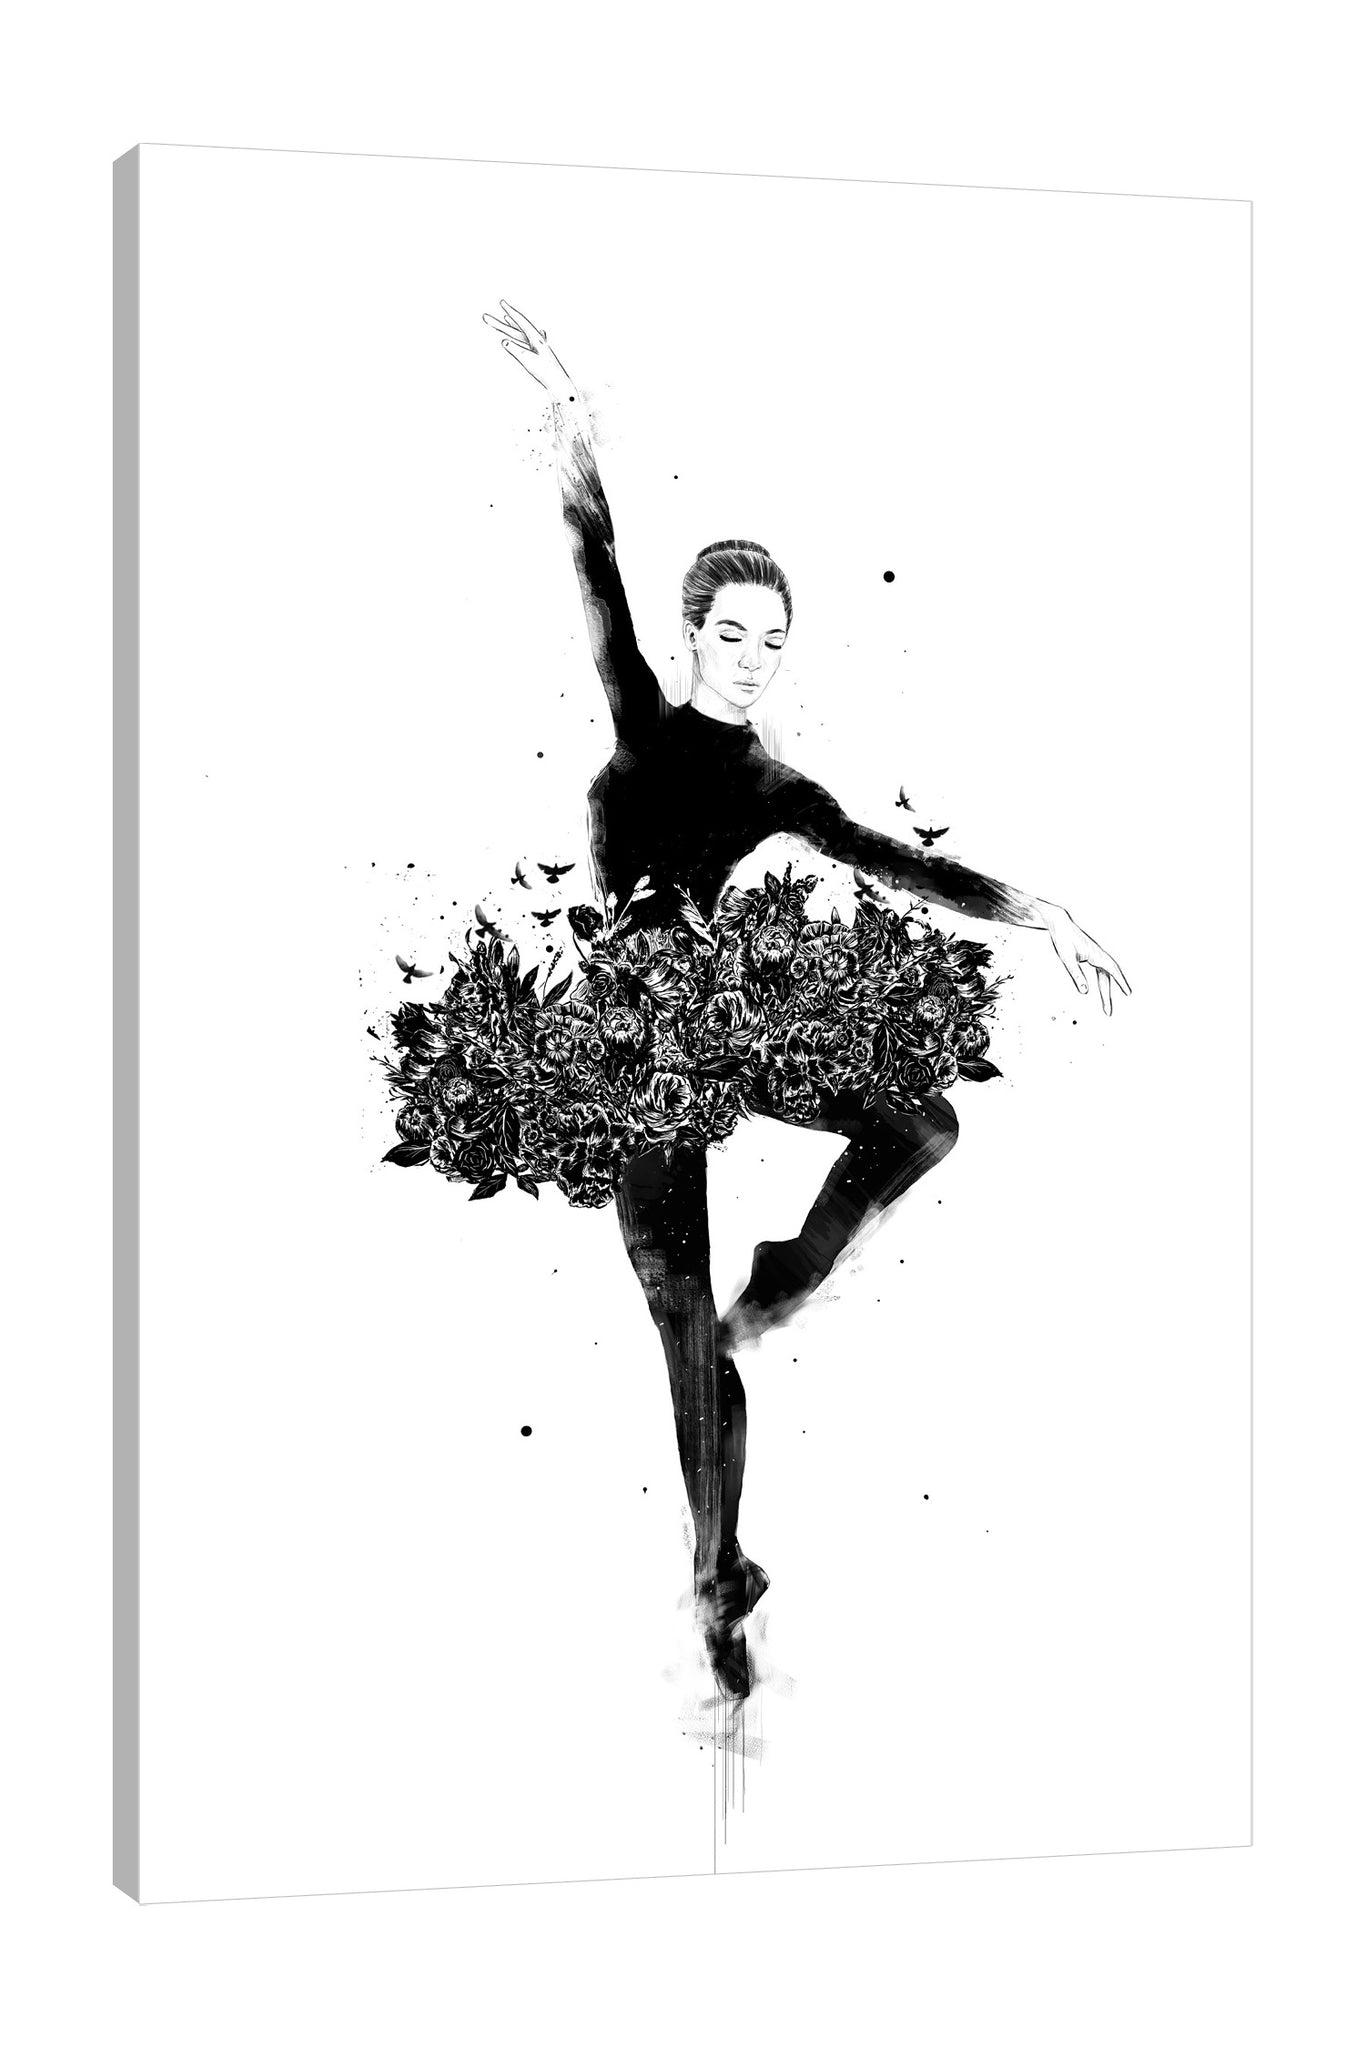 Balazs-Solti,Modern & Contemporary,People,Floral & Botanical,woman,women,ballet,dancing,dance,florals,floral,flower,flowers,birds,bird,black and white,Tan Orange,Mist Gray,Gray,Tan White